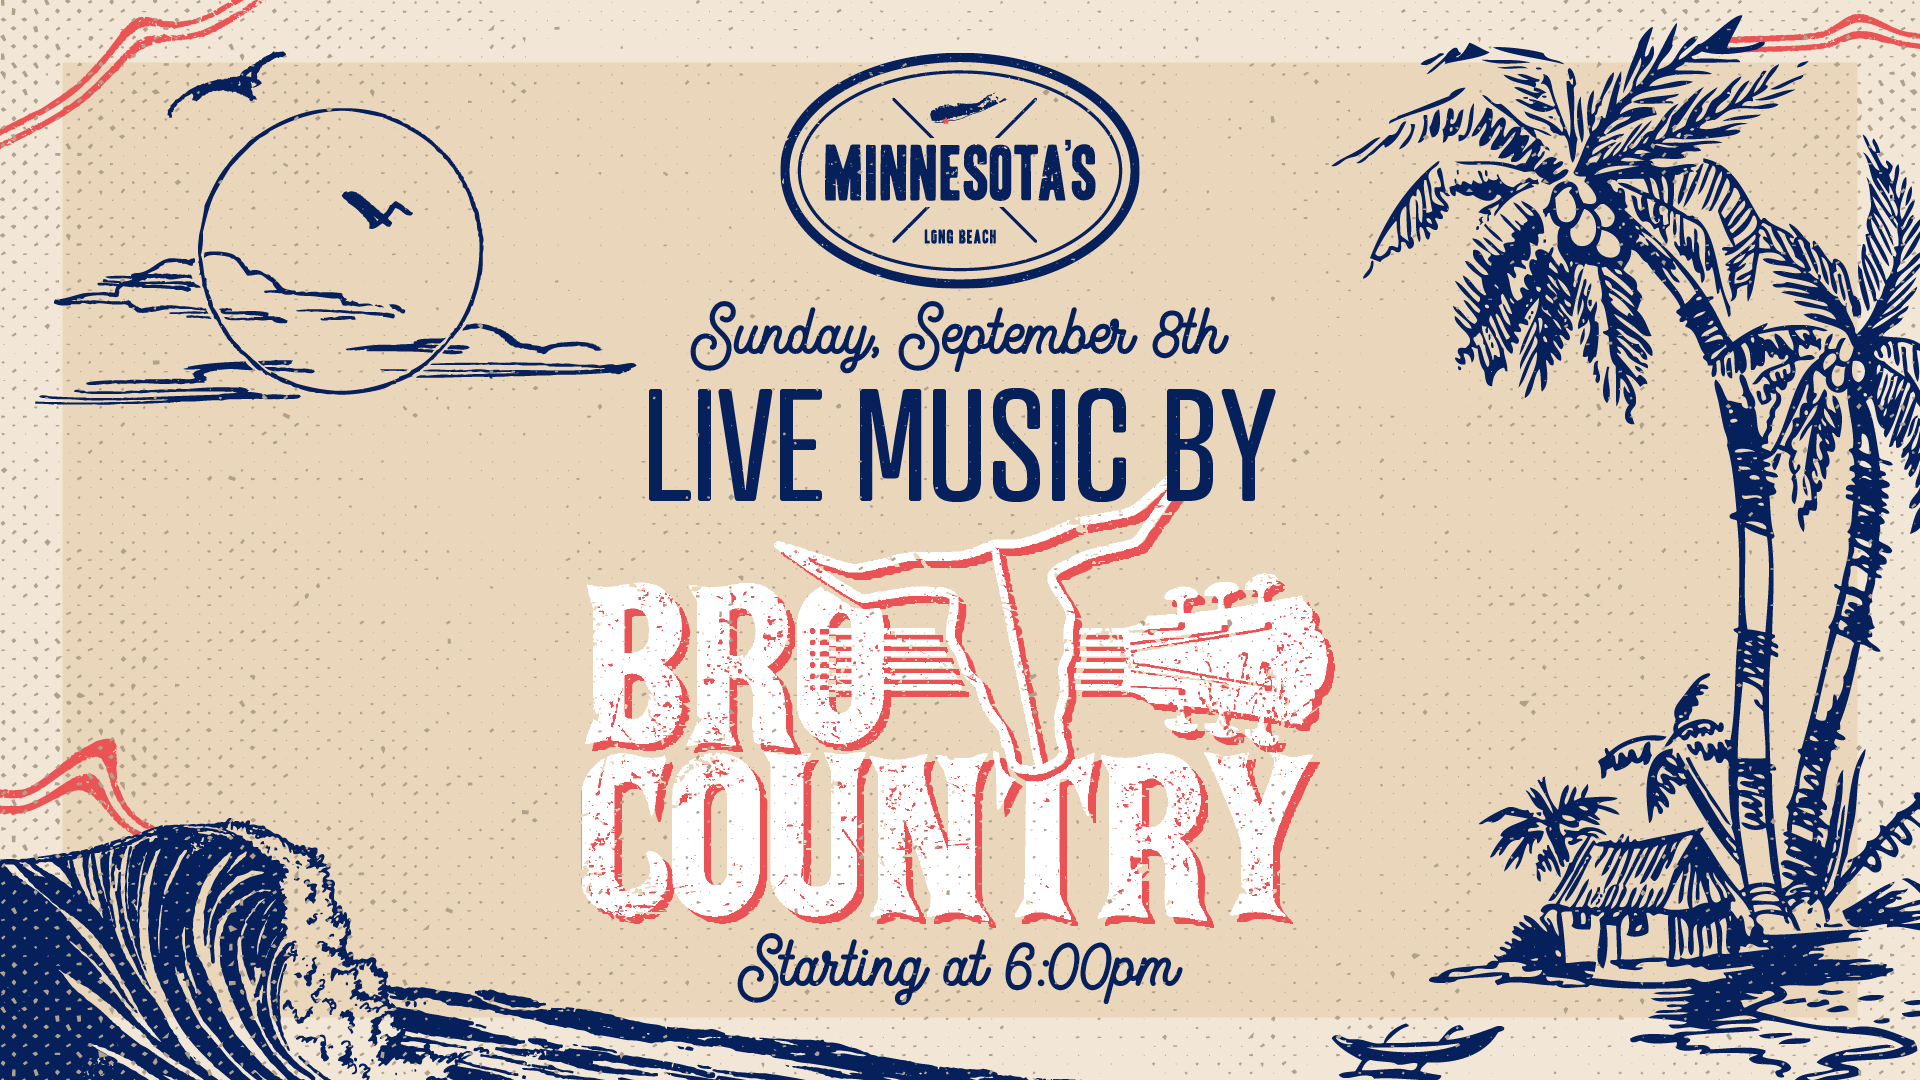 Live music with Bro Country on September 8th at 8 PM